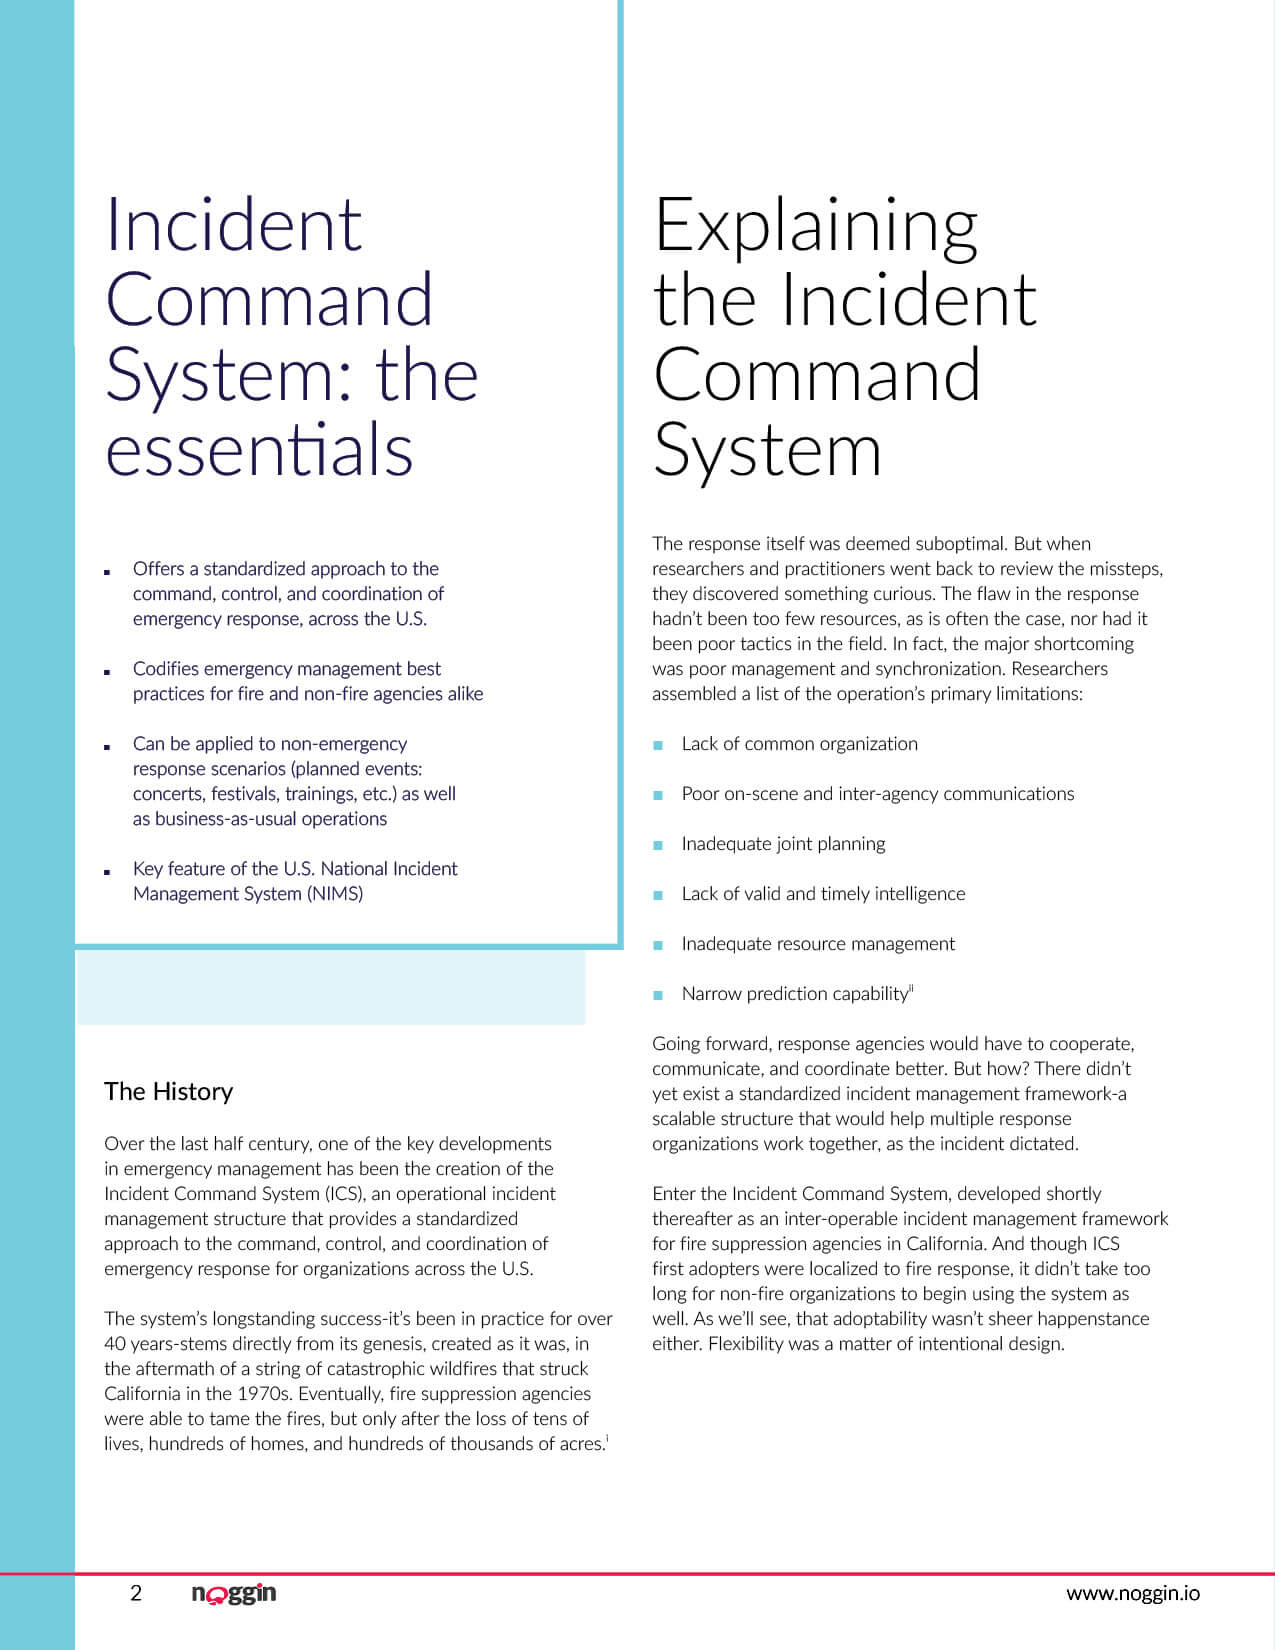 Noggin white paper guide on Understanding the Incident Command System. This was created to drive marketing qualified leads for the Noggin OCA product from the website. Page 2 of 10